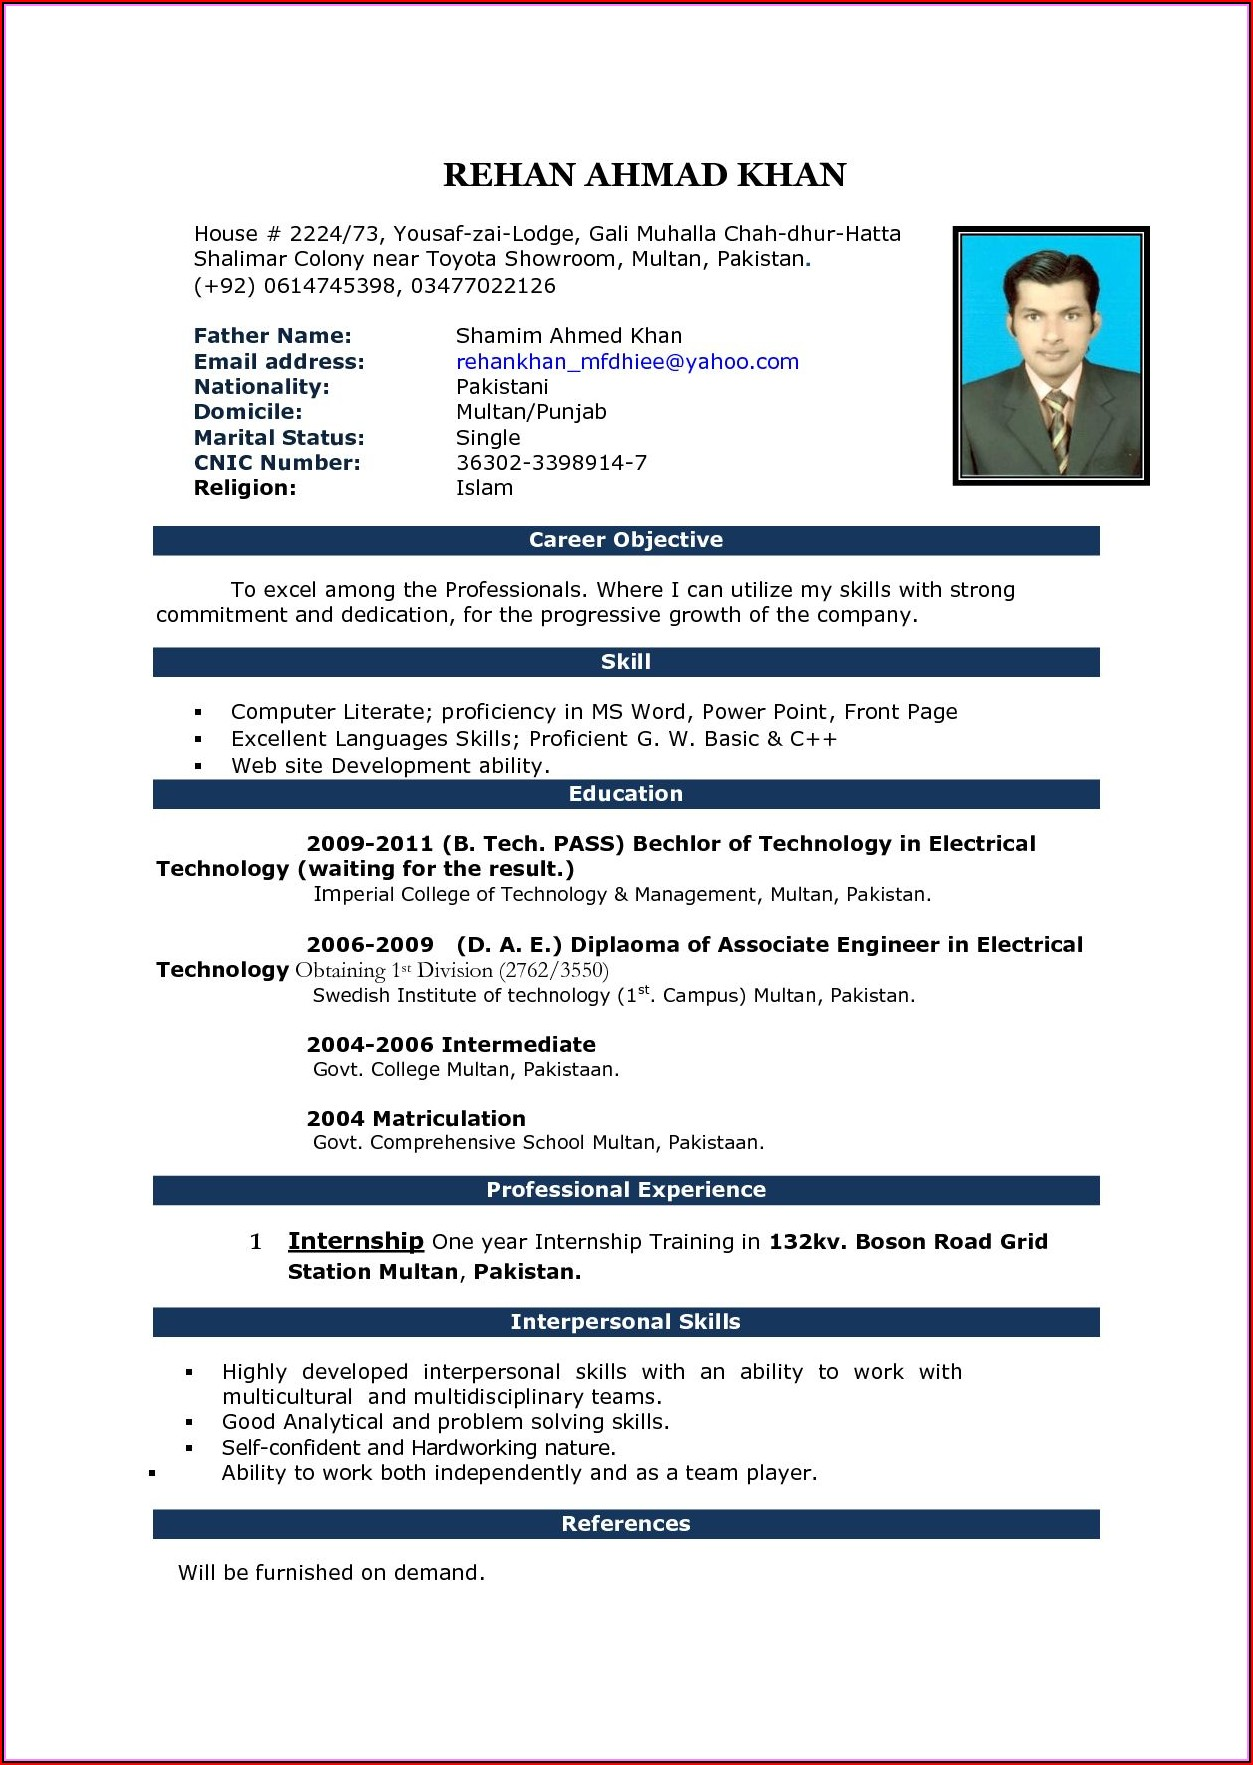 Resume Templates In Word Free Download